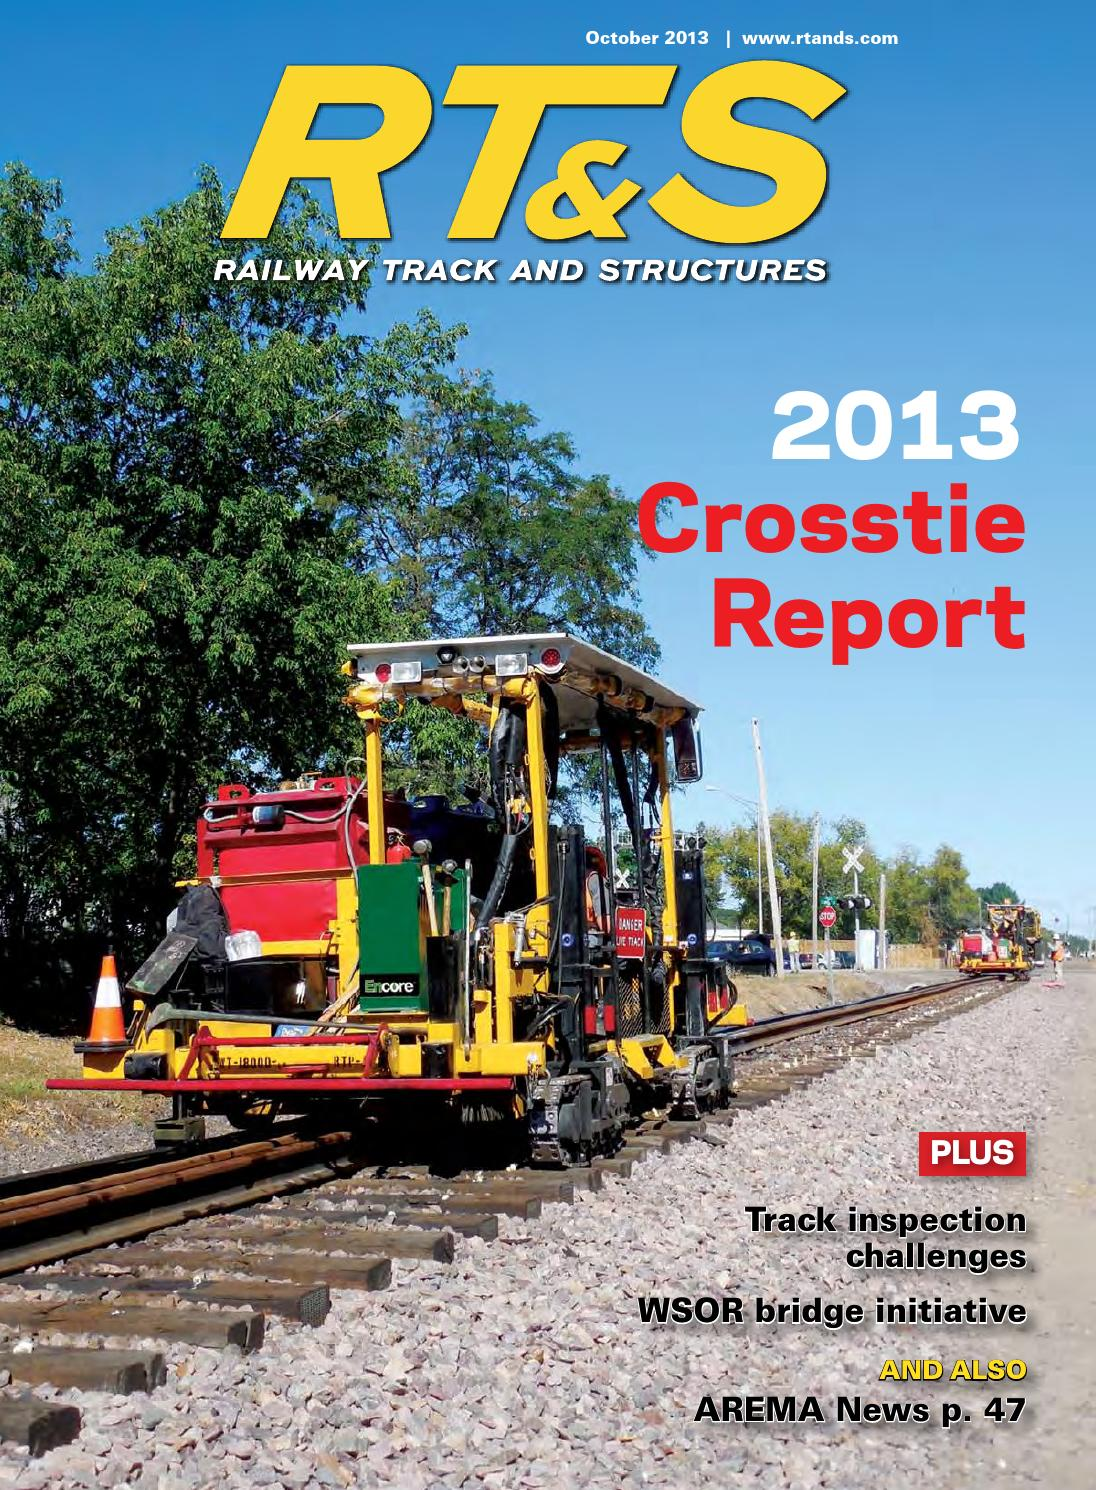 Rts1013 by Railway Track & Structures - issuu